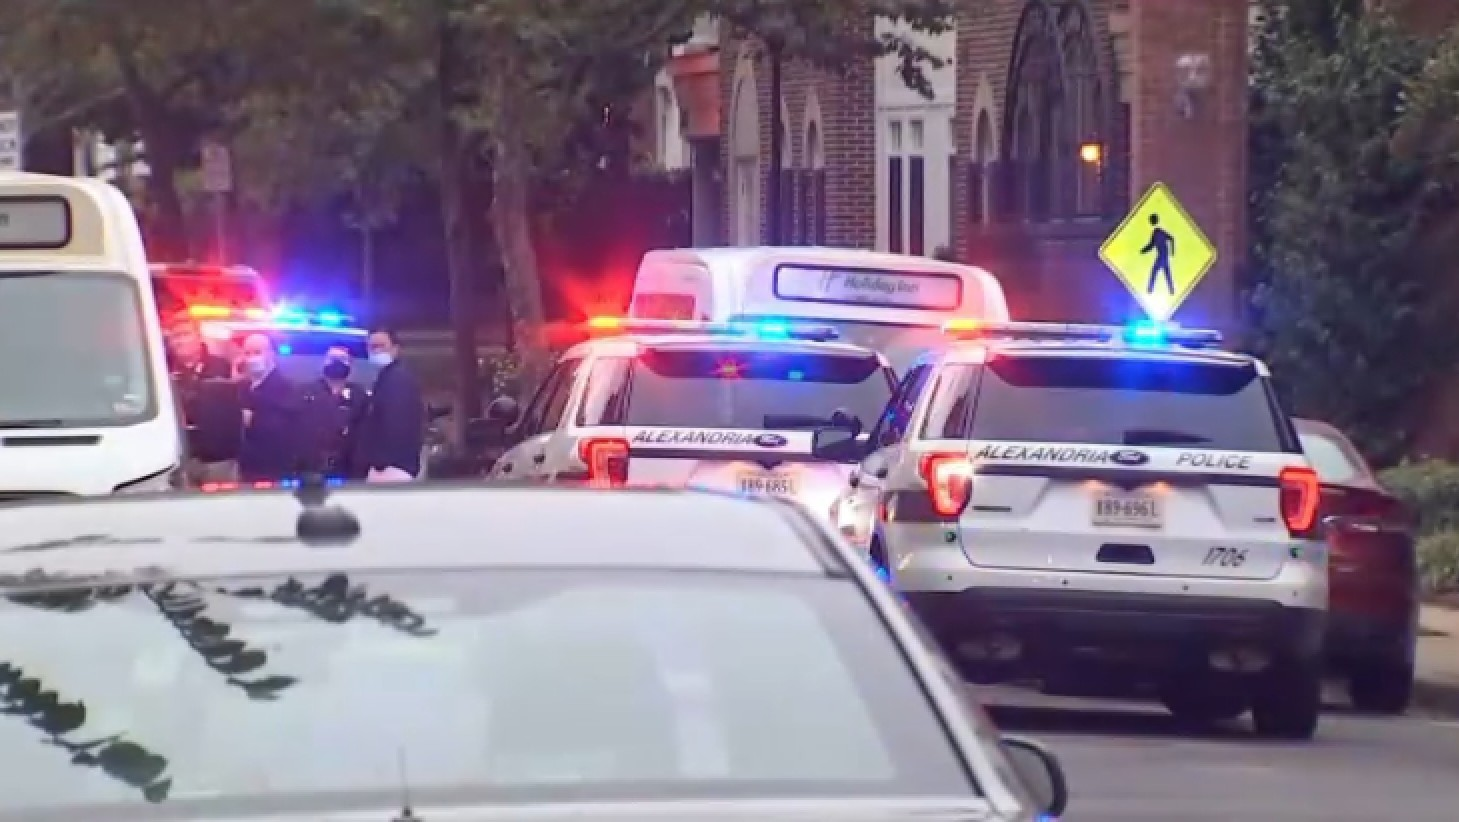 Officer Wounded, Suspect Dead After Shootouts in Old Town Alexandria